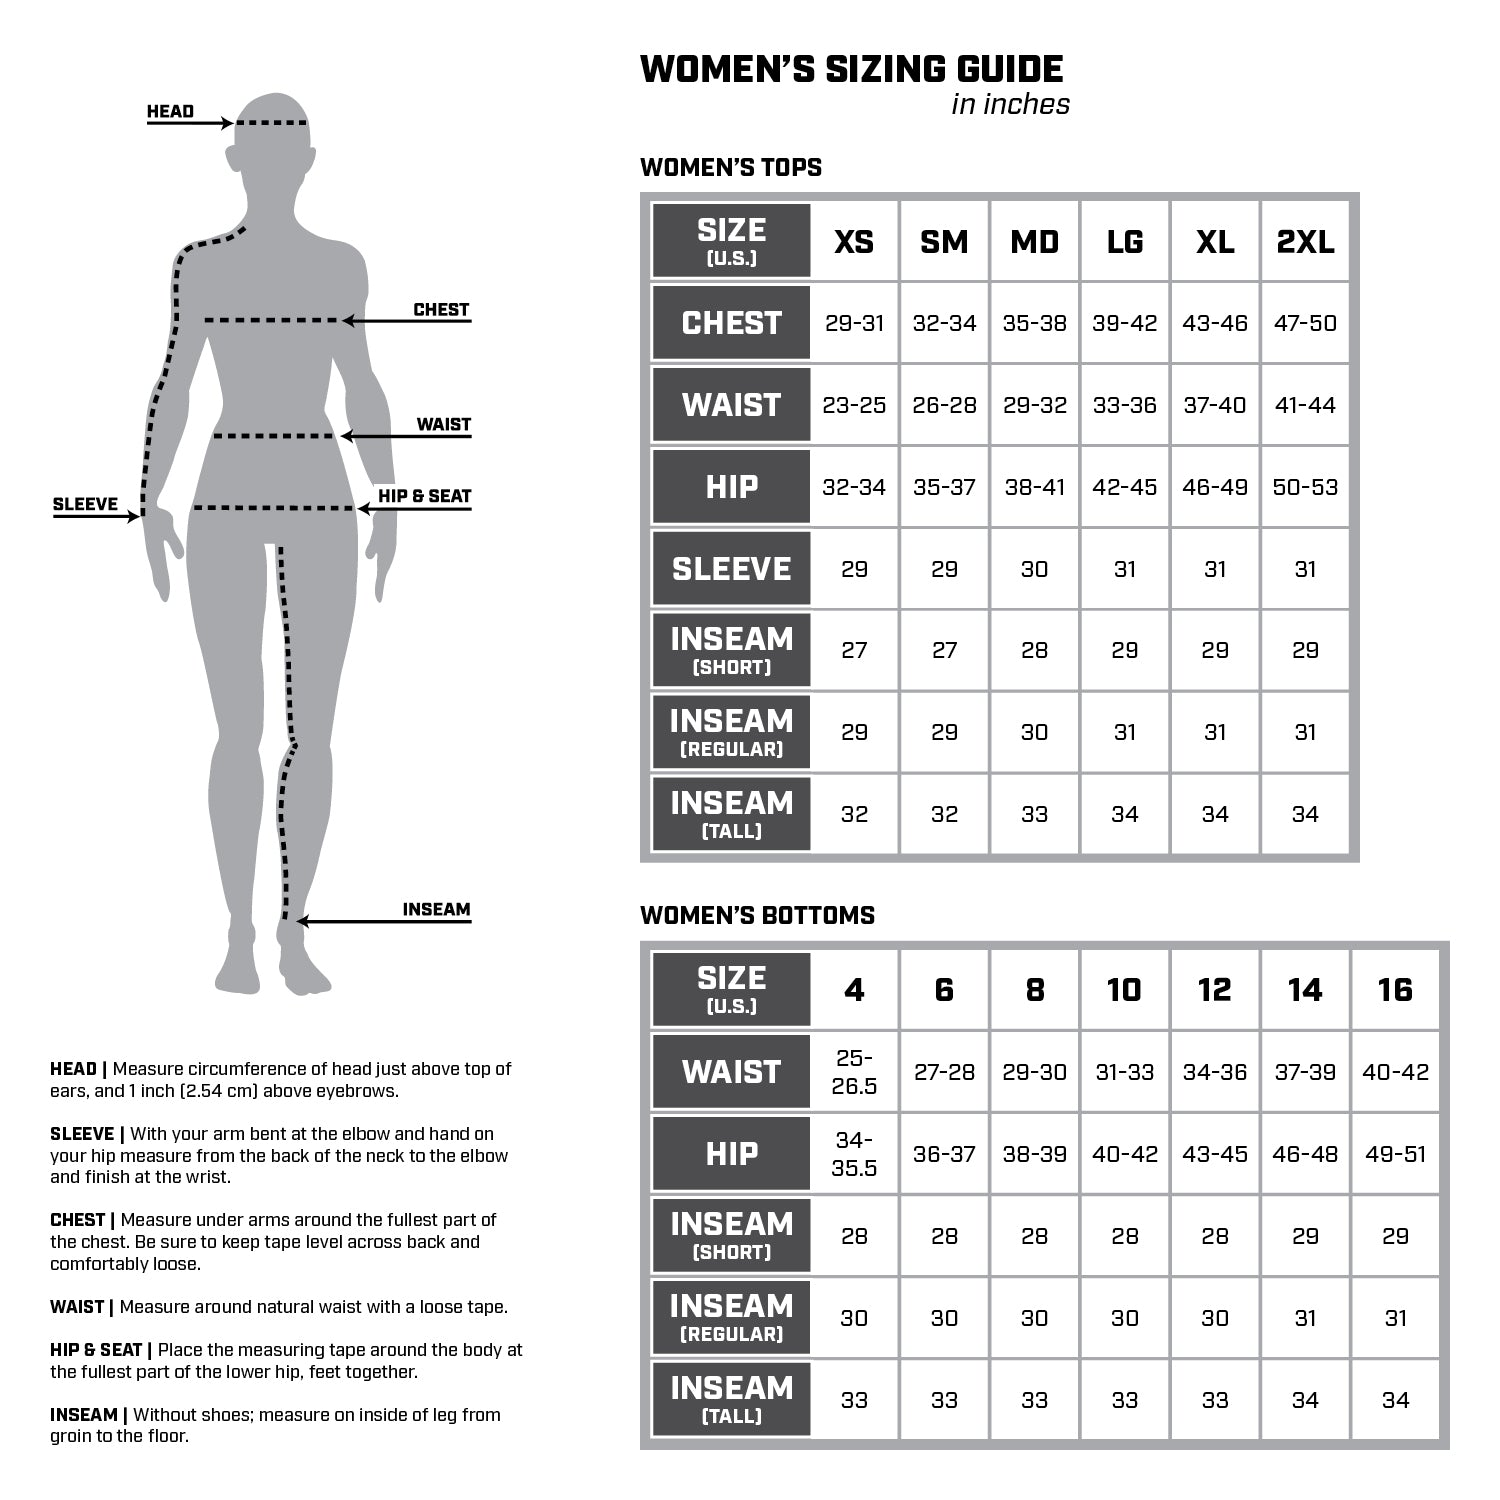 Apparel Size Chart Please use the below chart to help determine your size.  Since sizing and cuts will vary between brands, please use the chart as a general guide to compare the various size scales. If you have a specific sizing question or would like more information, please email me before purchasing!  The below sizes are listed in U.S. sizes unless otherwise noted.